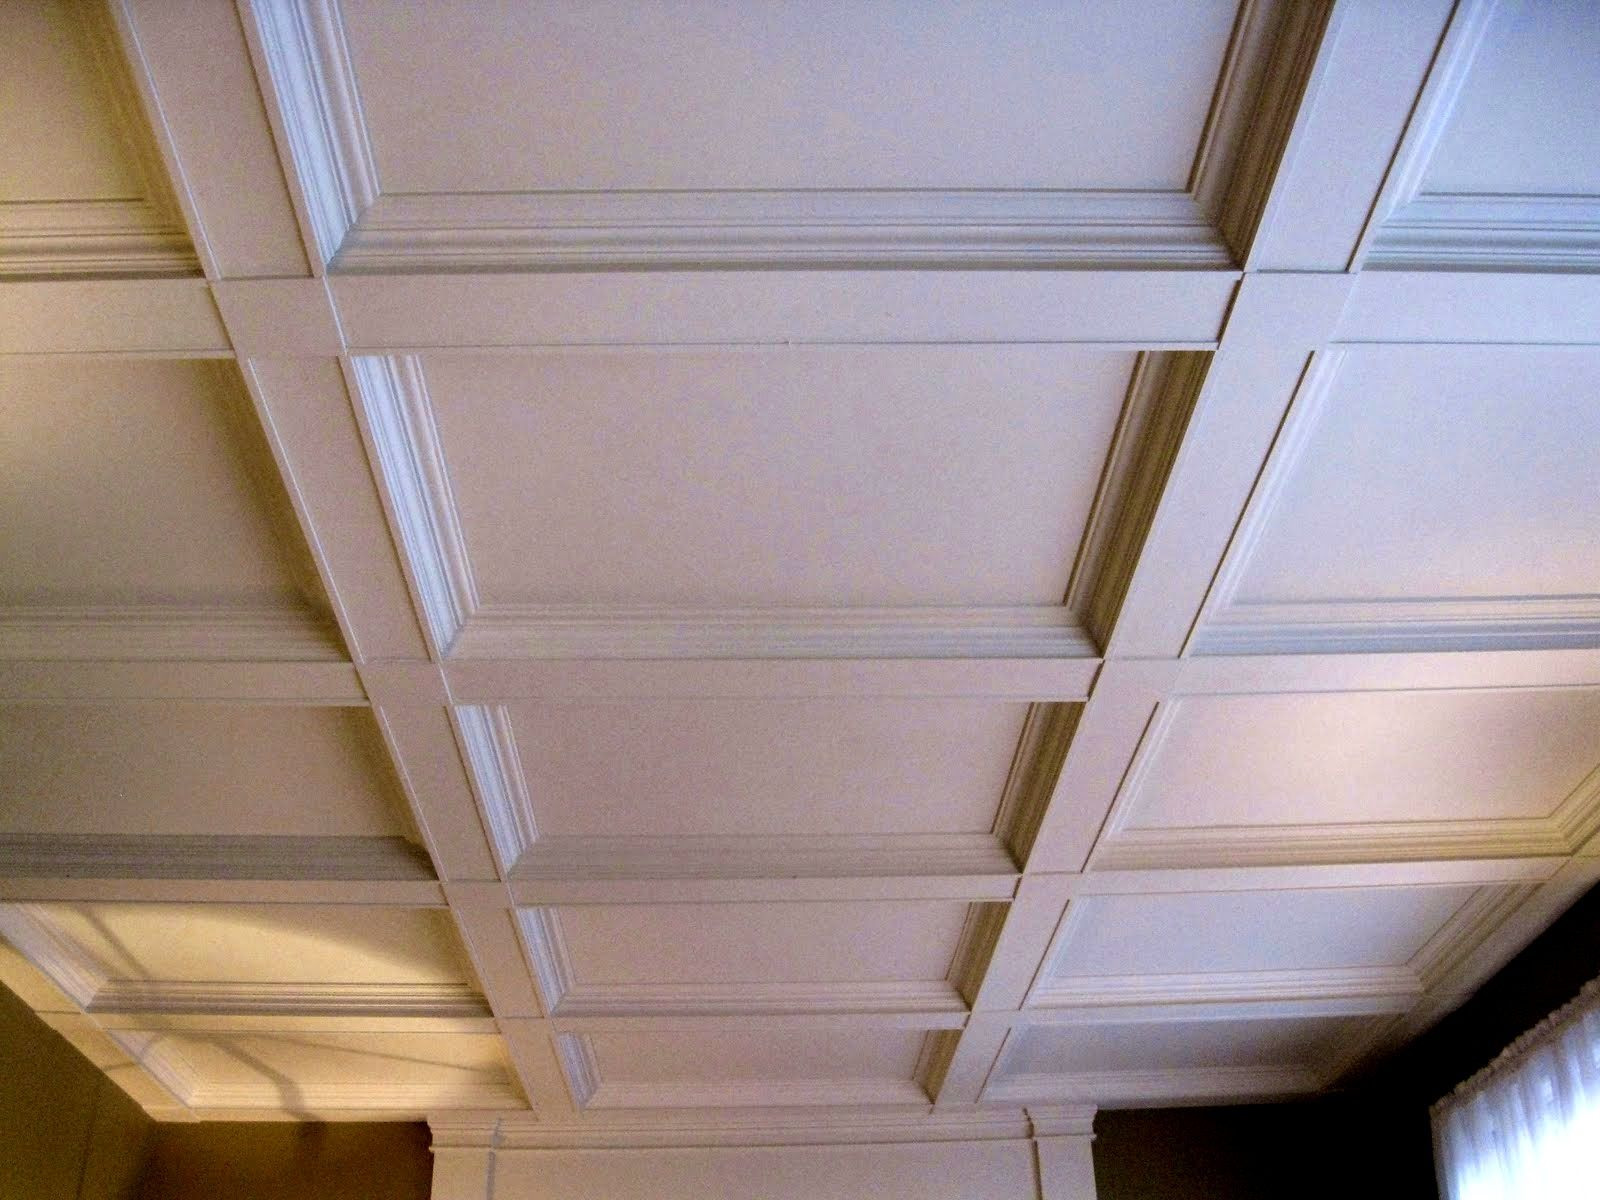 How to build a coffered ceiling - Furniturelicious Images About Faux Coffered Ceiling Ideas Shallow Fecfbbbbbbc Marvelous How Build Coffered Ceiling This Old